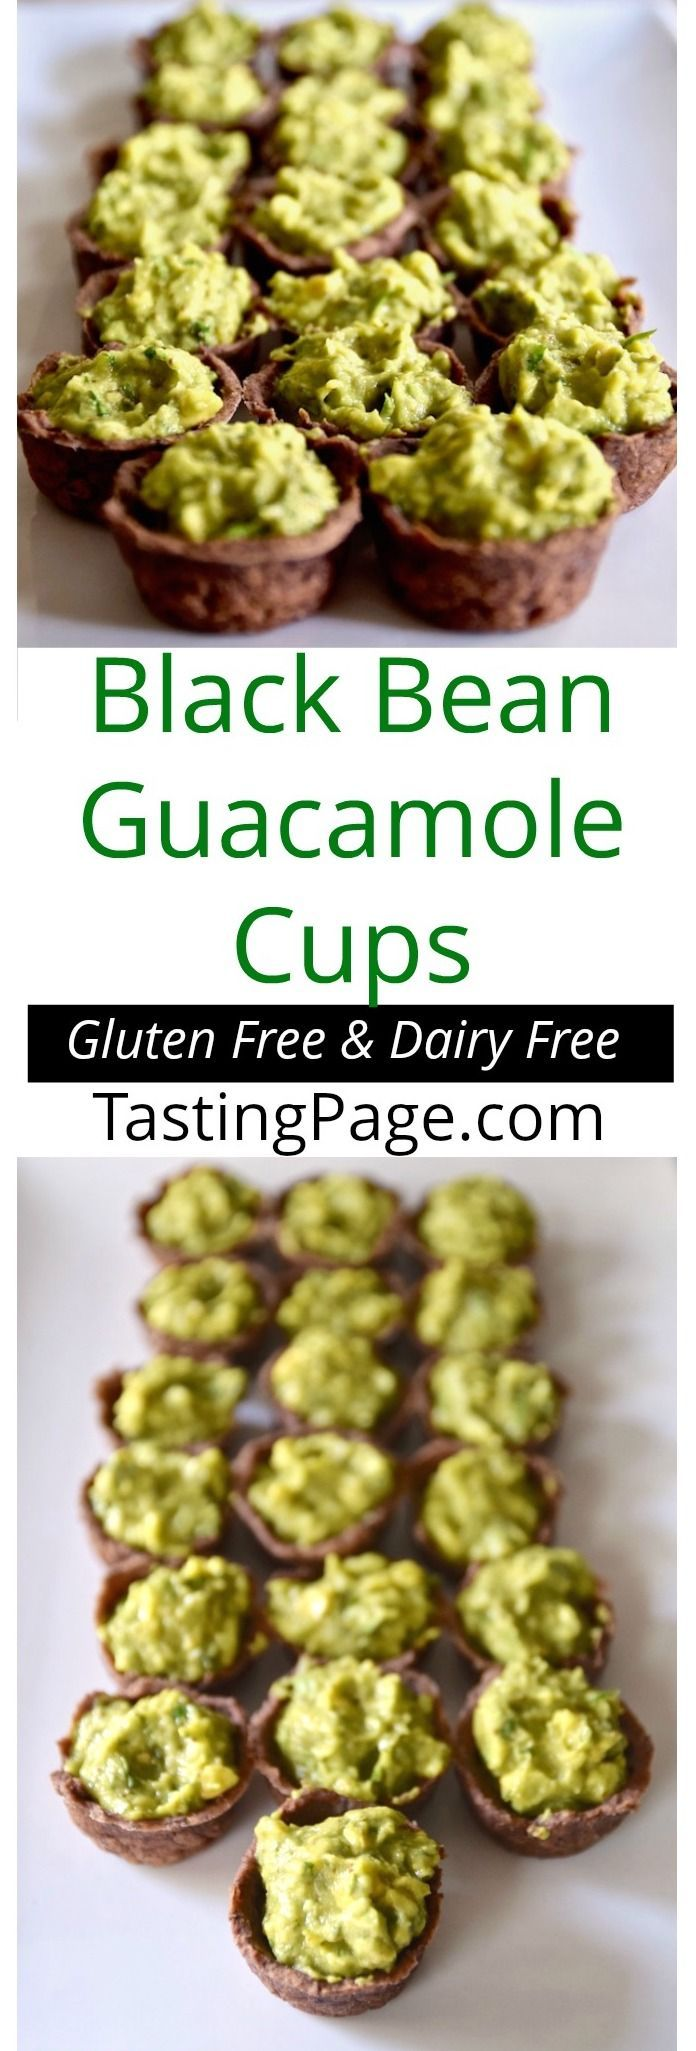 Save the chip with these gluten free dairy free black bean guacamole cups | TastingPage.com